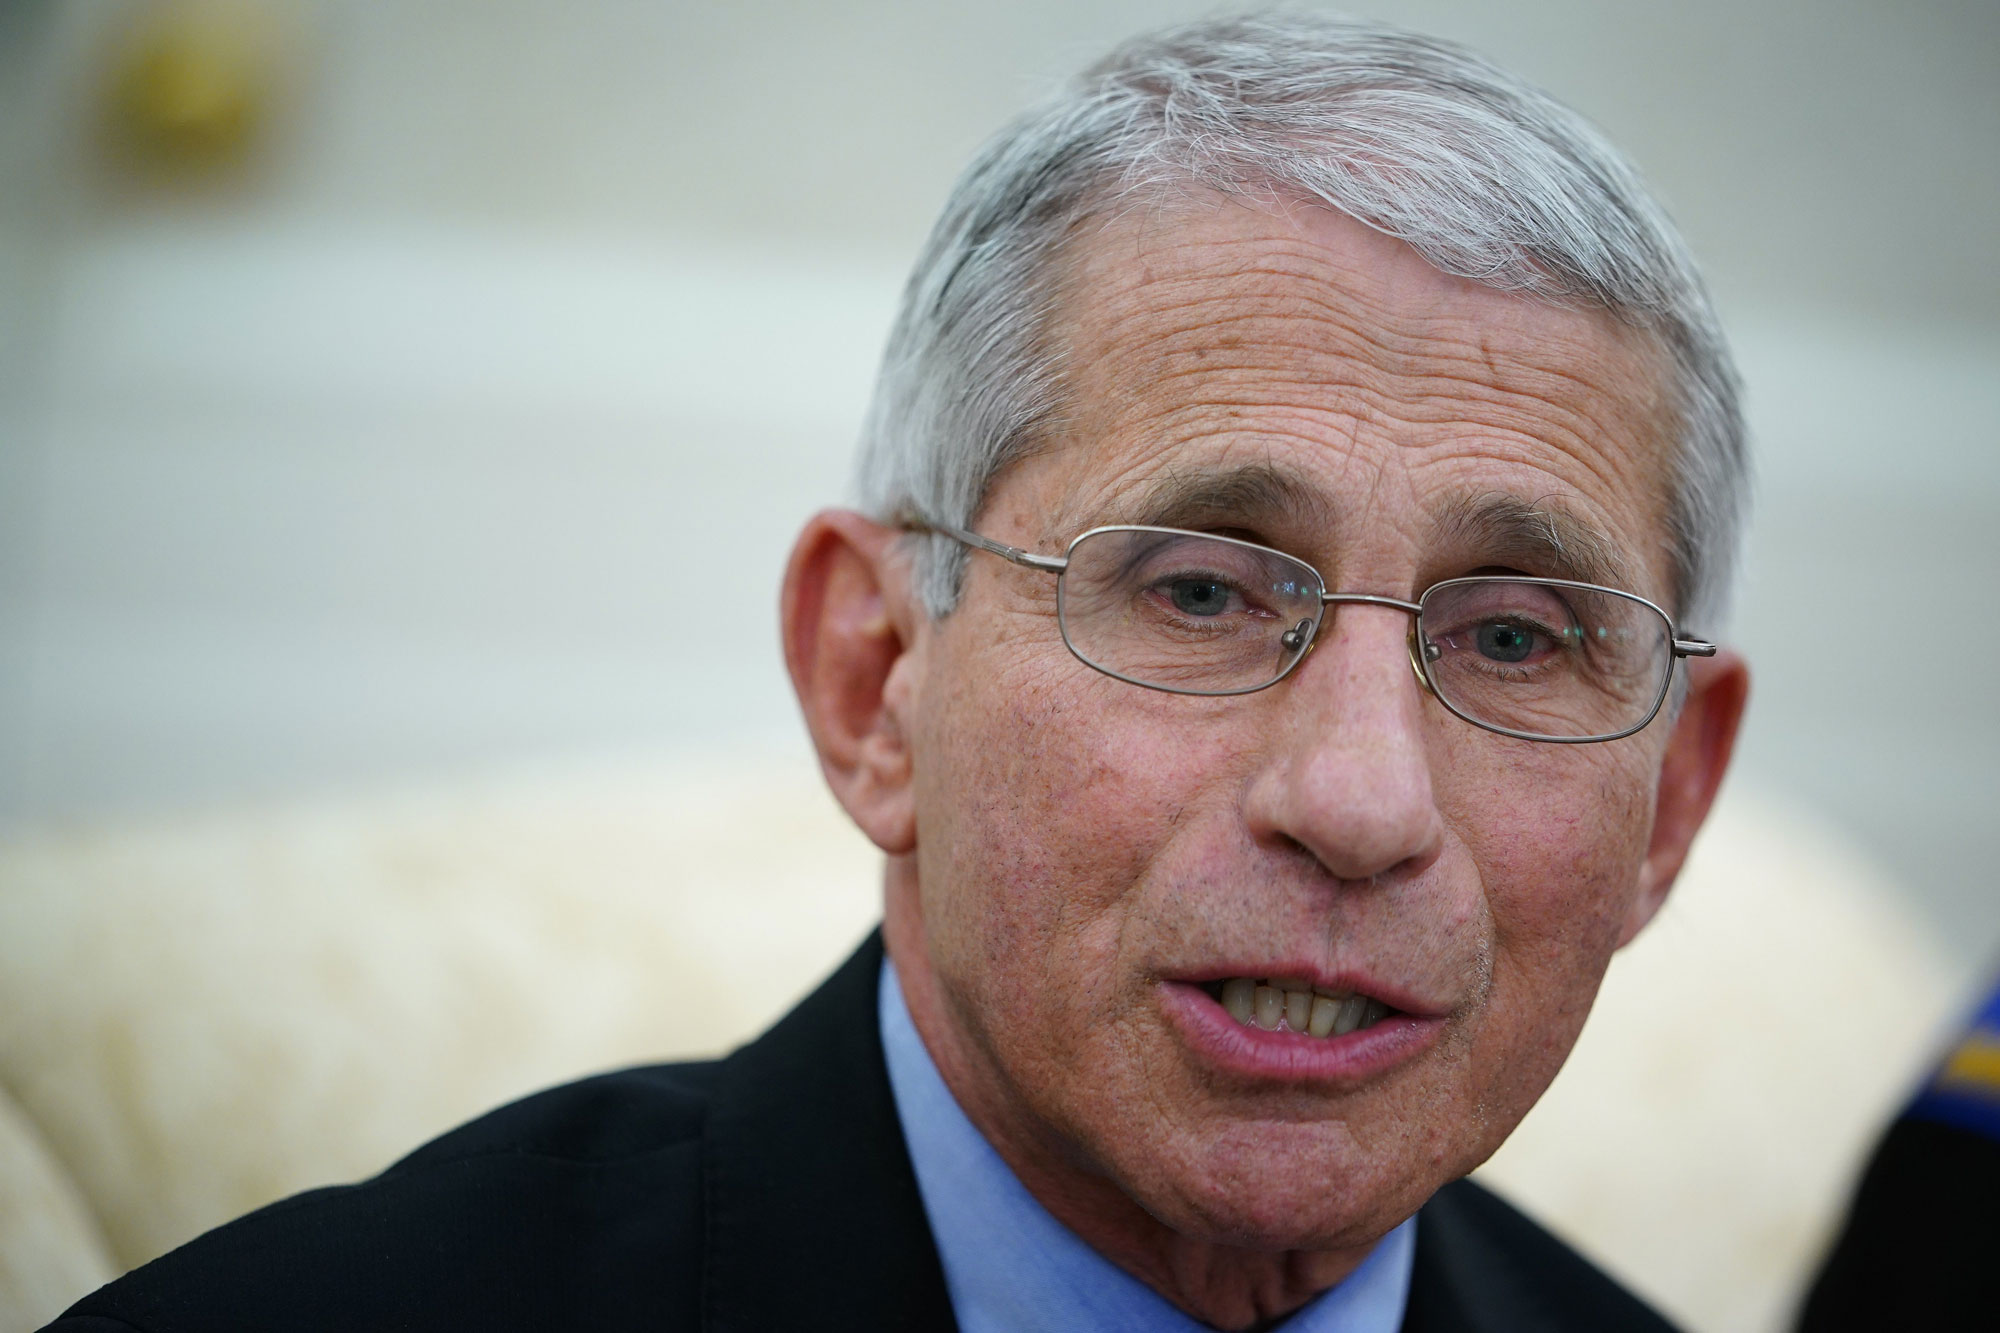 Dr. Anthony Fauci speaks during a meeting in the Oval Office of the White House in Washington, on April 29.